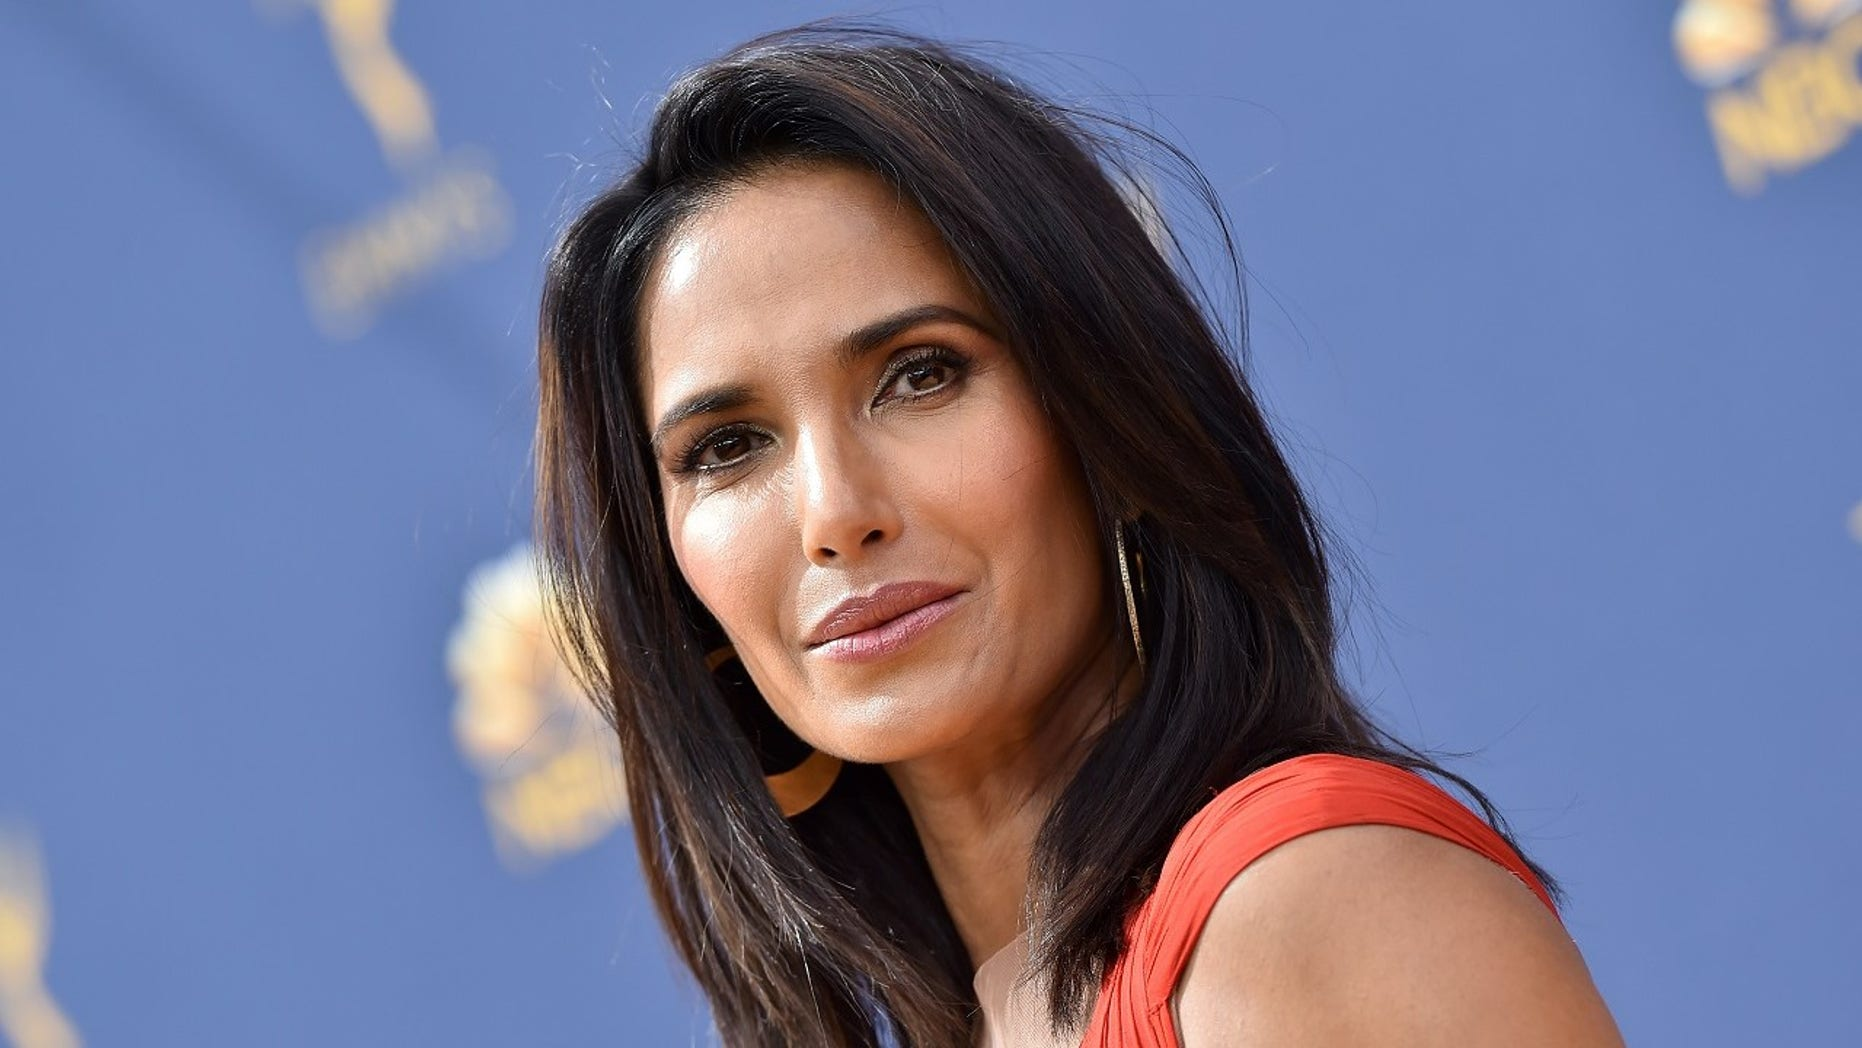 LOS ANGELES, CA - SEPTEMBER 17:  Padma Lakshmi attends the 70th Emmy Awards at Microsoft Theater on September 17, 2018 in Los Angeles, California.  (Photo by Axelle/Bauer-Griffin/FilmMagic)